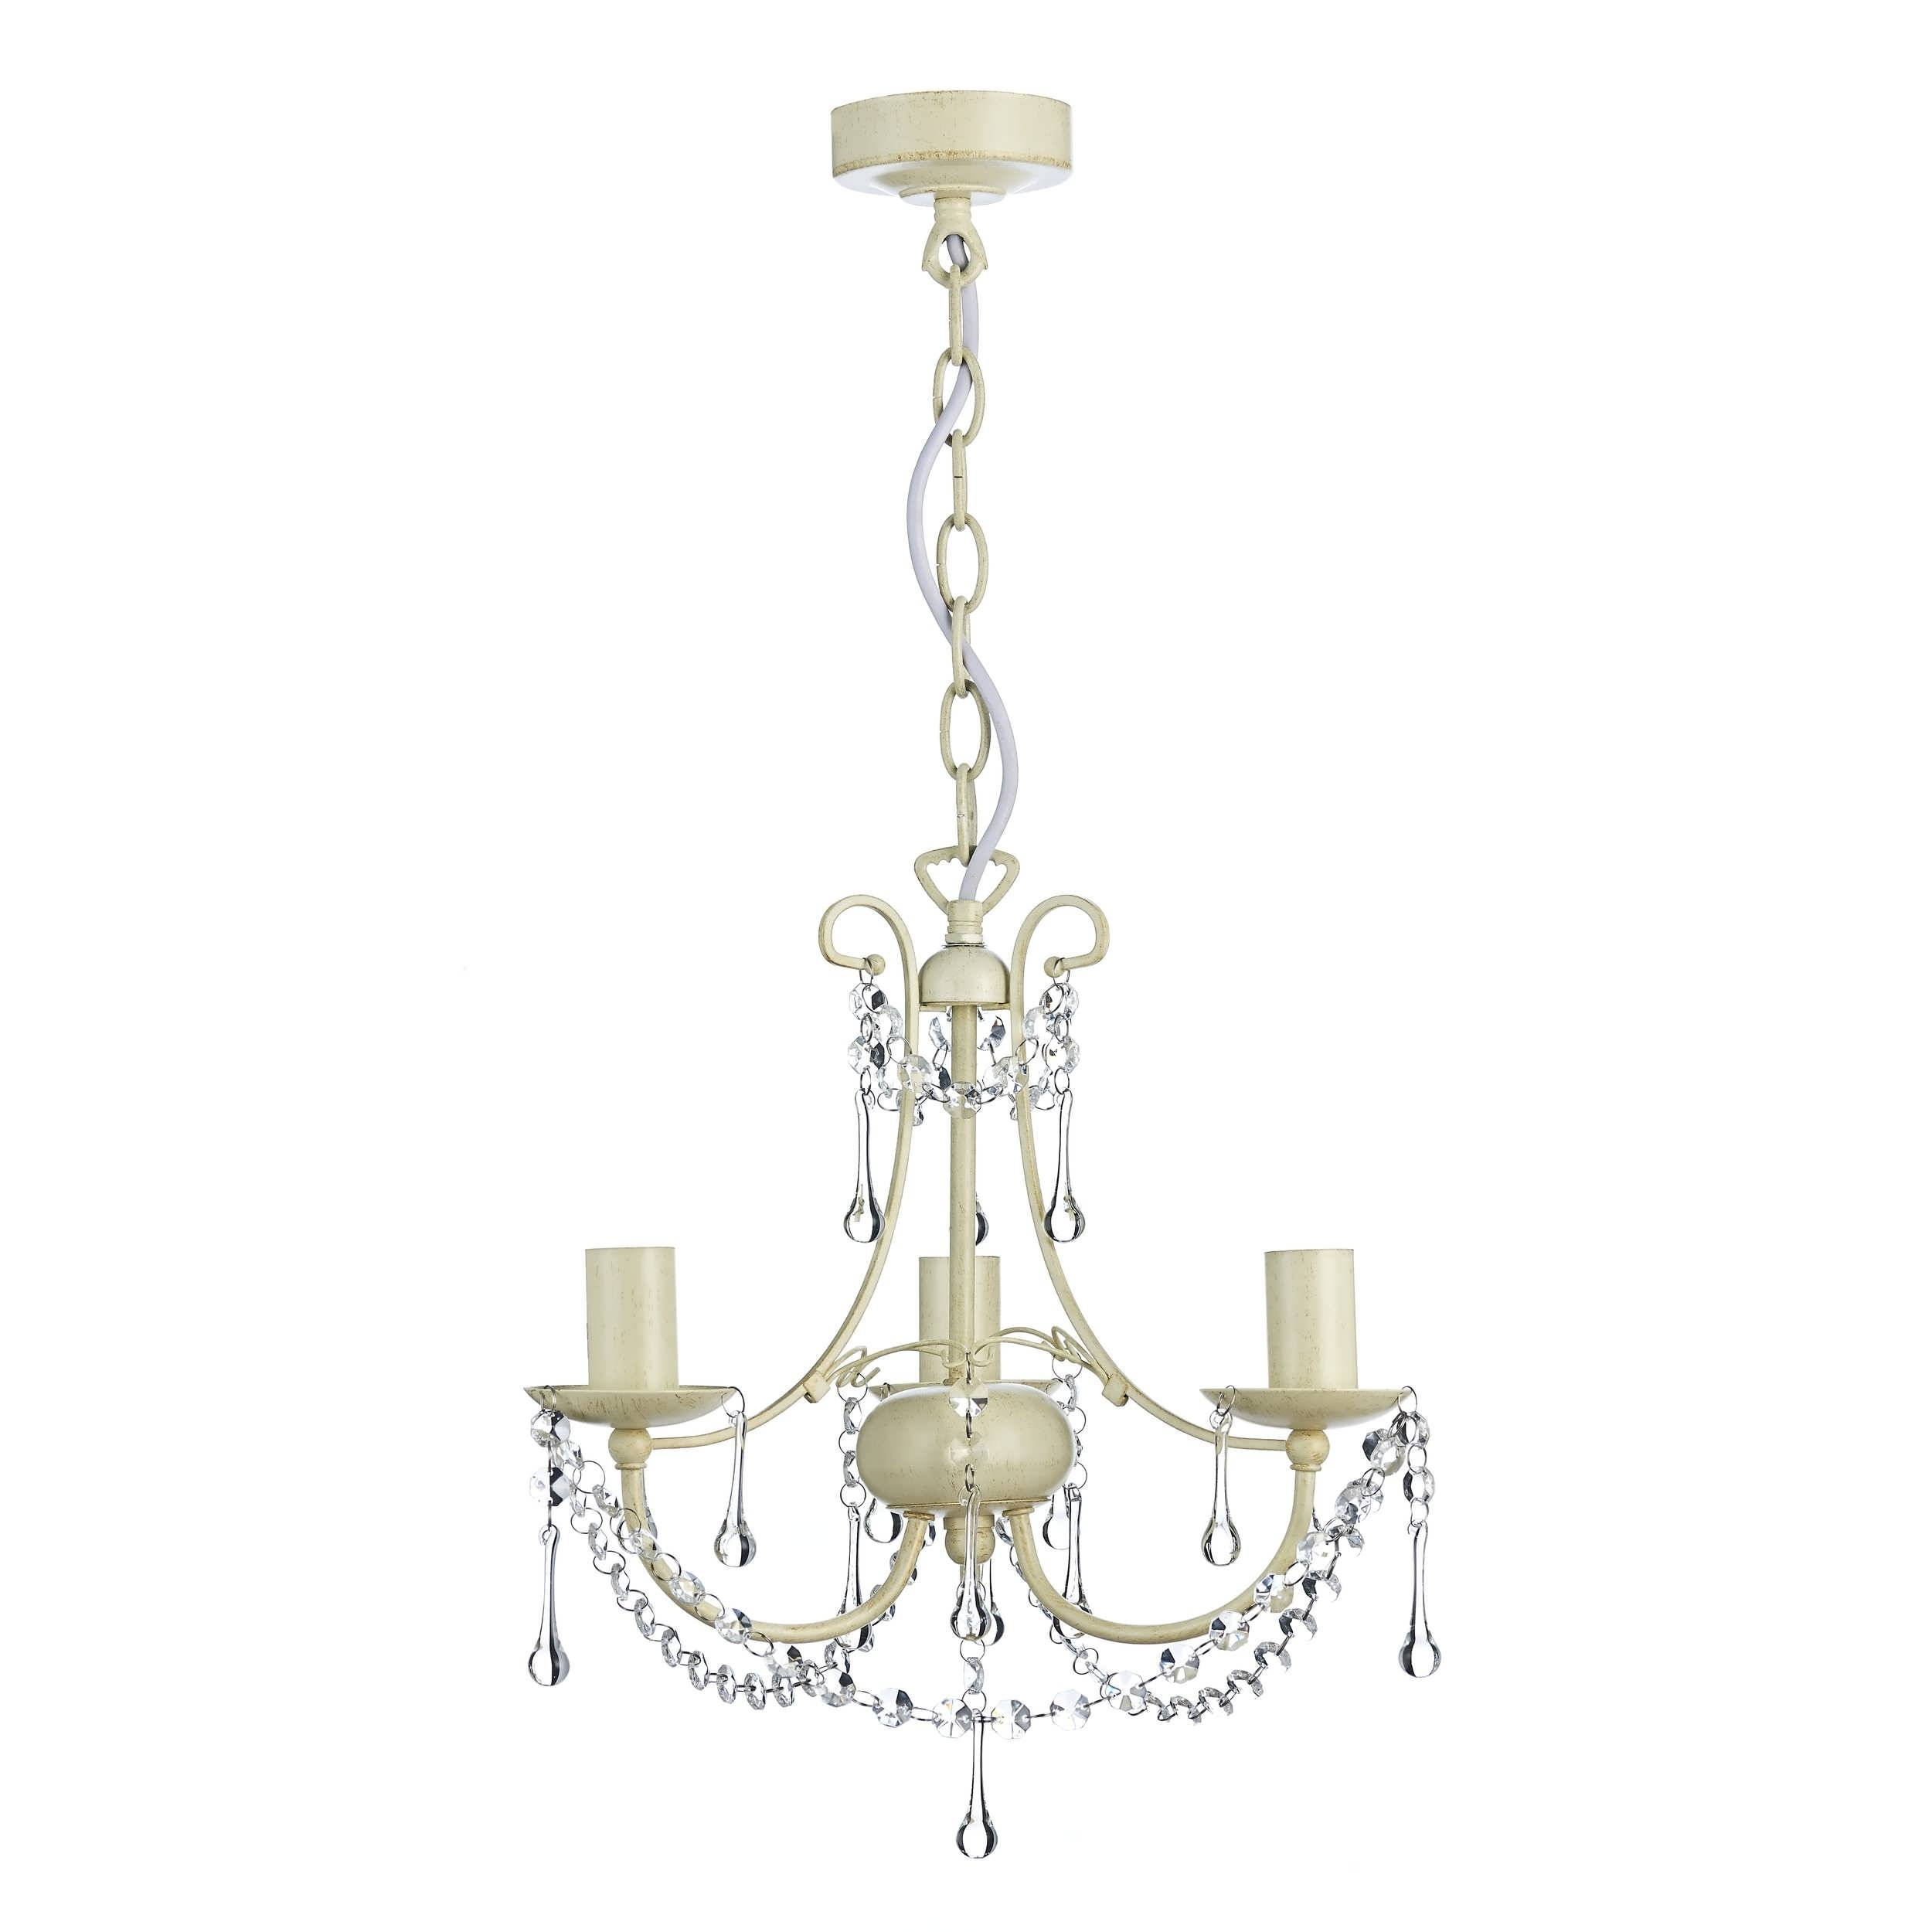 Chandelier : Wrought Iron Chandeliers Chandelier Lights Cream Pertaining To Nursery Pendant Lights (View 7 of 15)